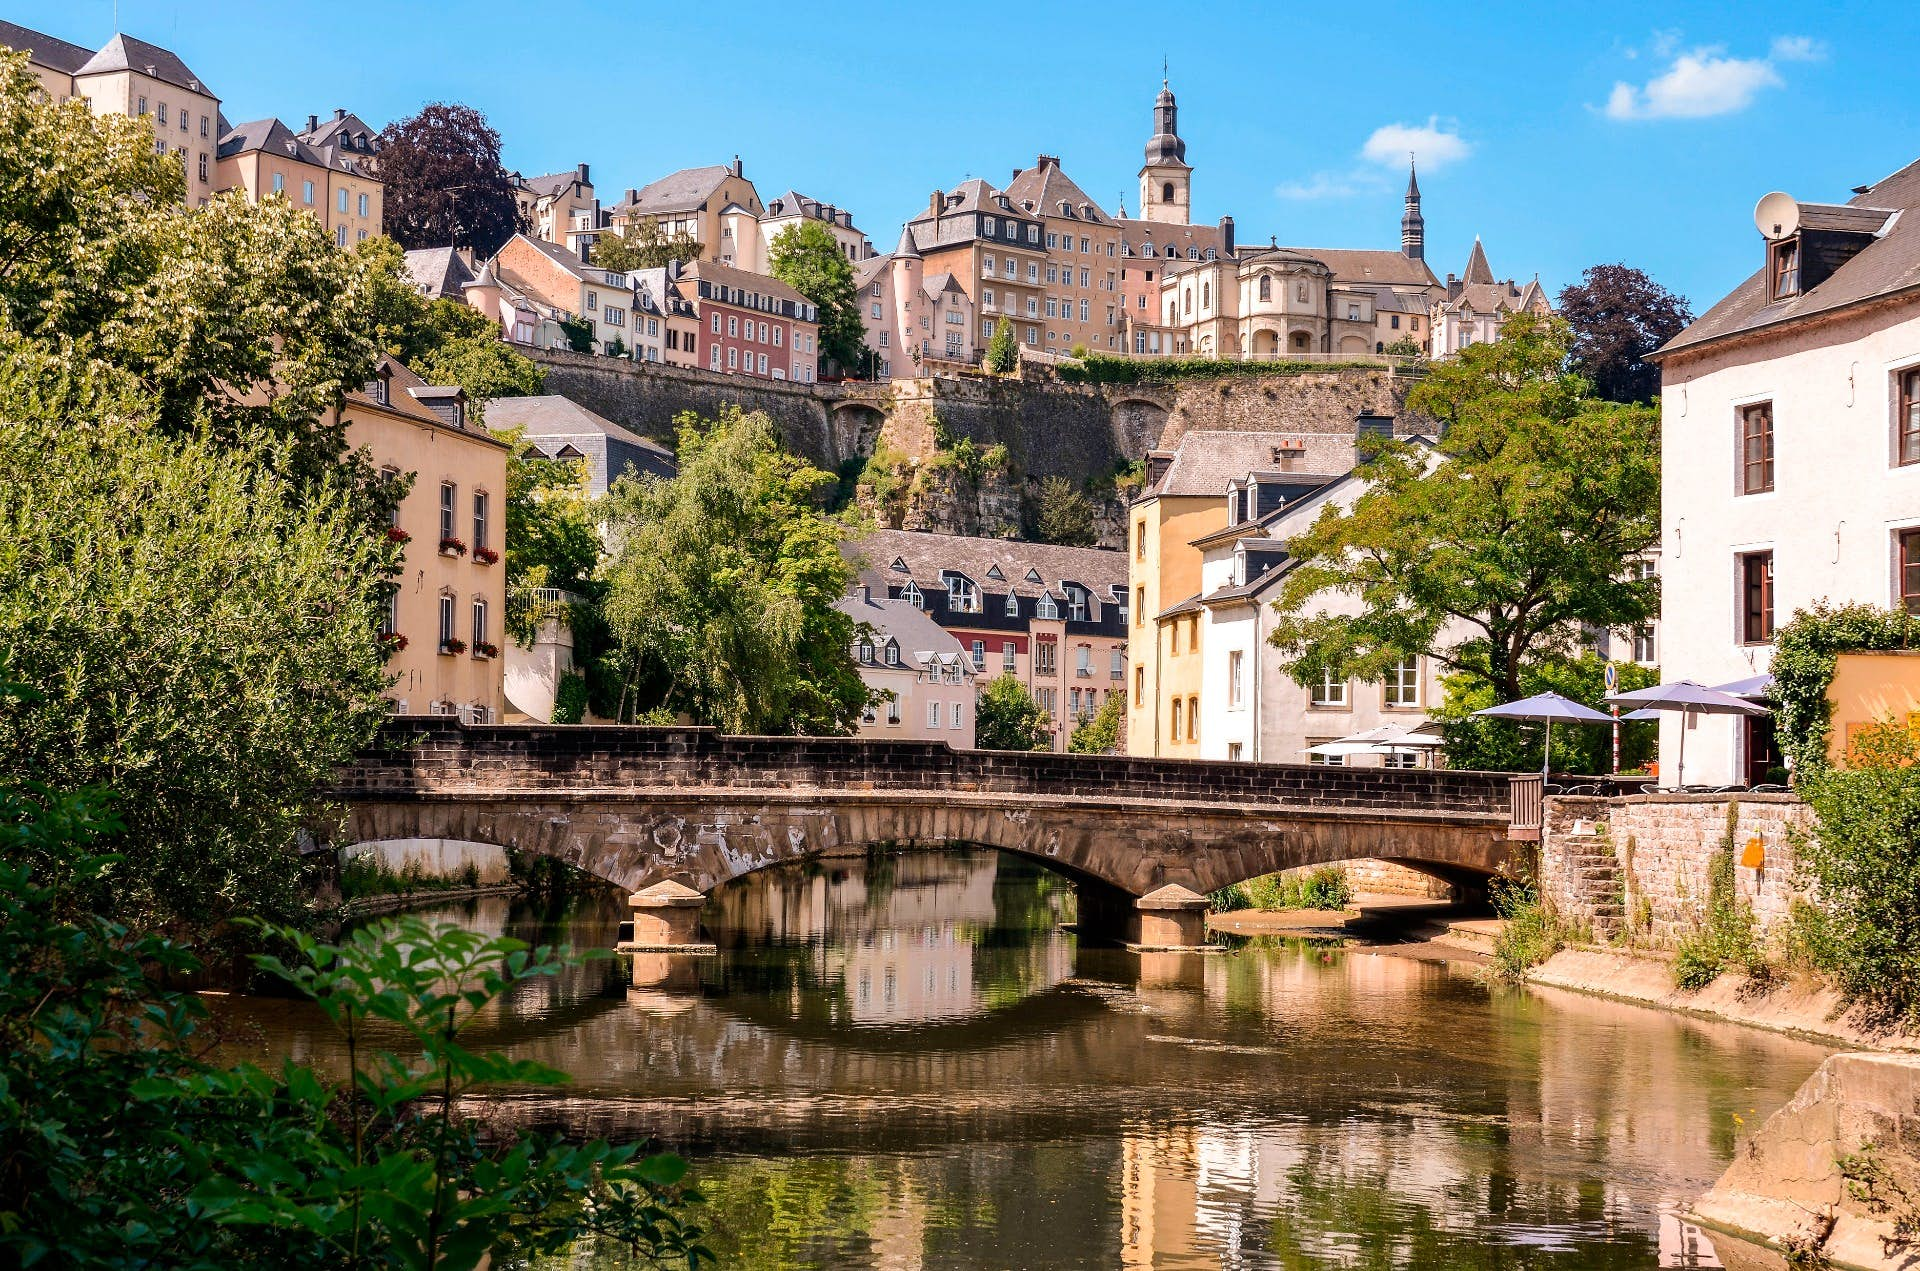 Romantic Luxembourg: Remember your love image